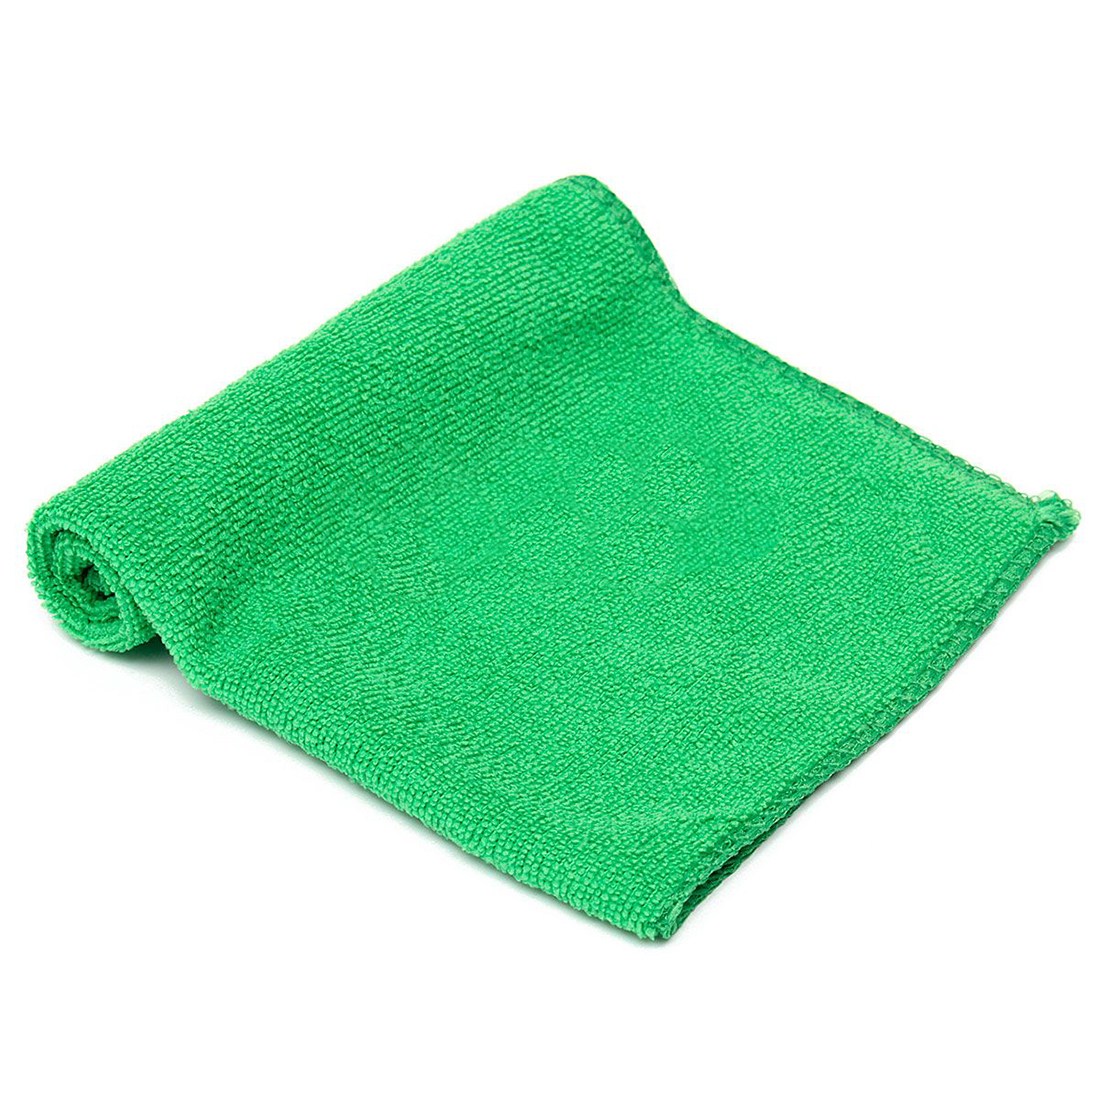 10pcs Towels Cleaning Towel Car Washing Cloth Microfiber